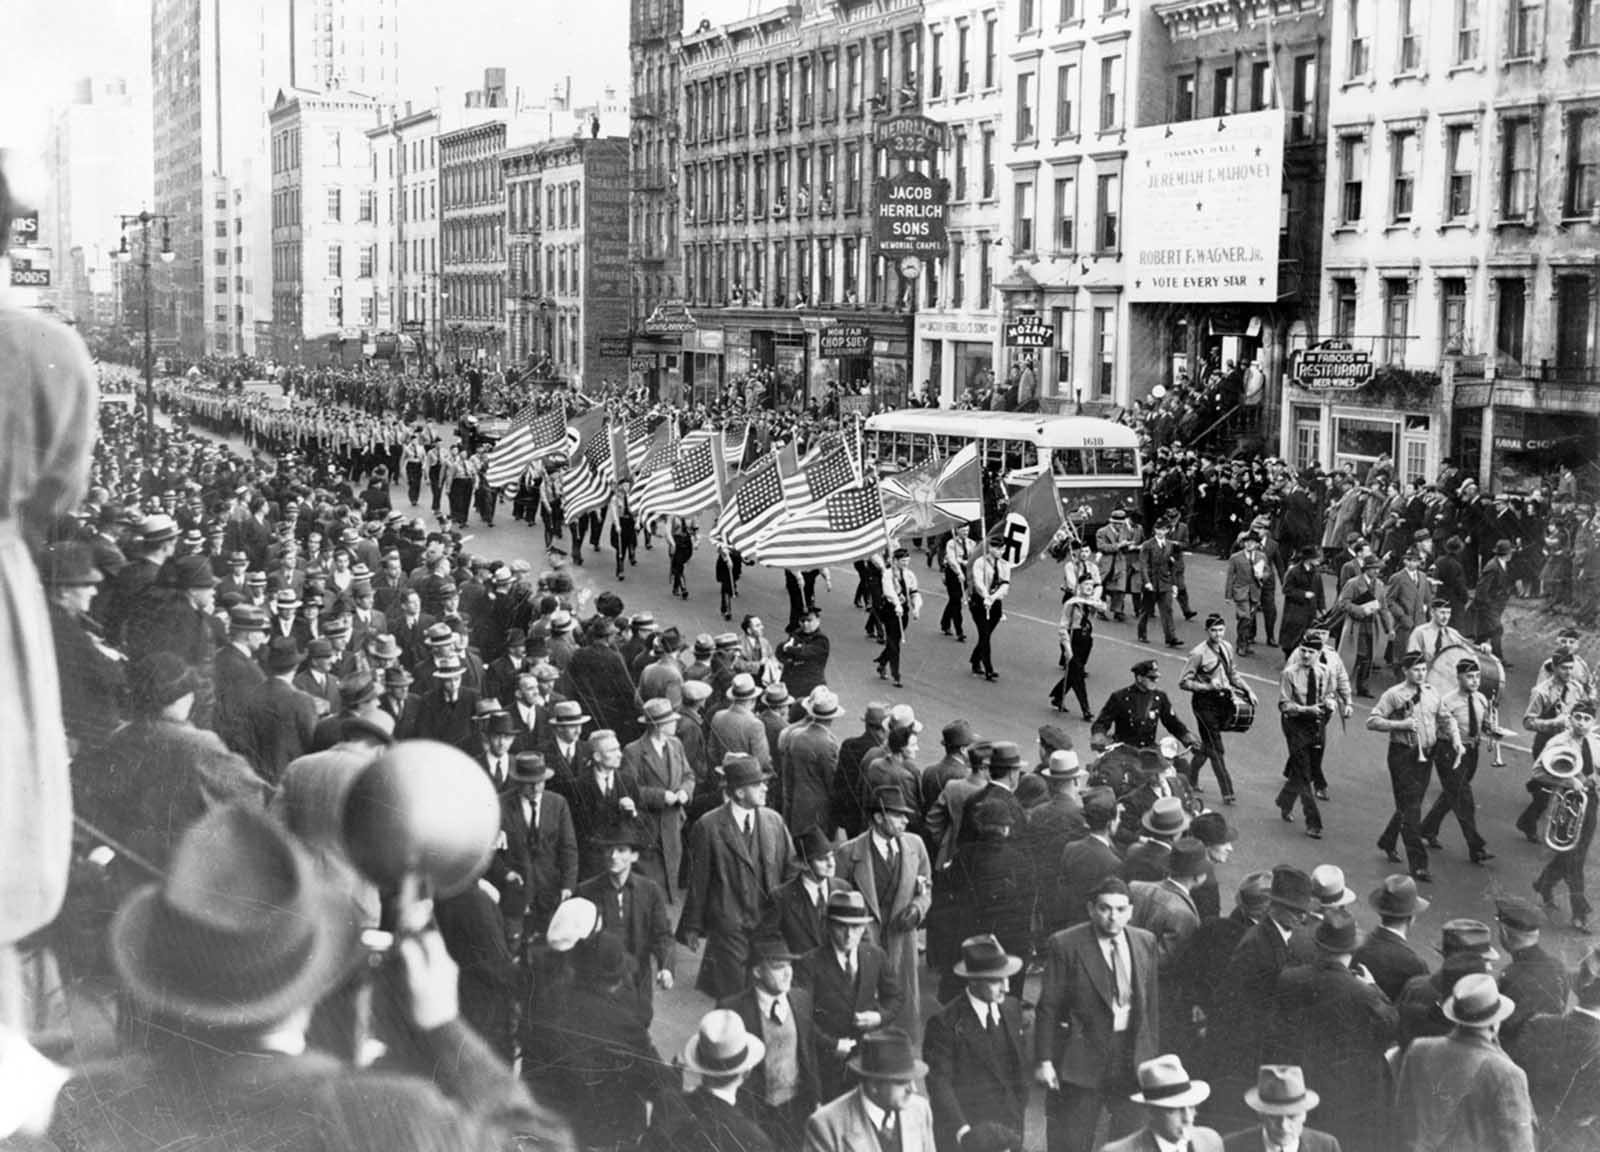 German American Bund parade in New York City on East 86th St. on October 30, 1939.